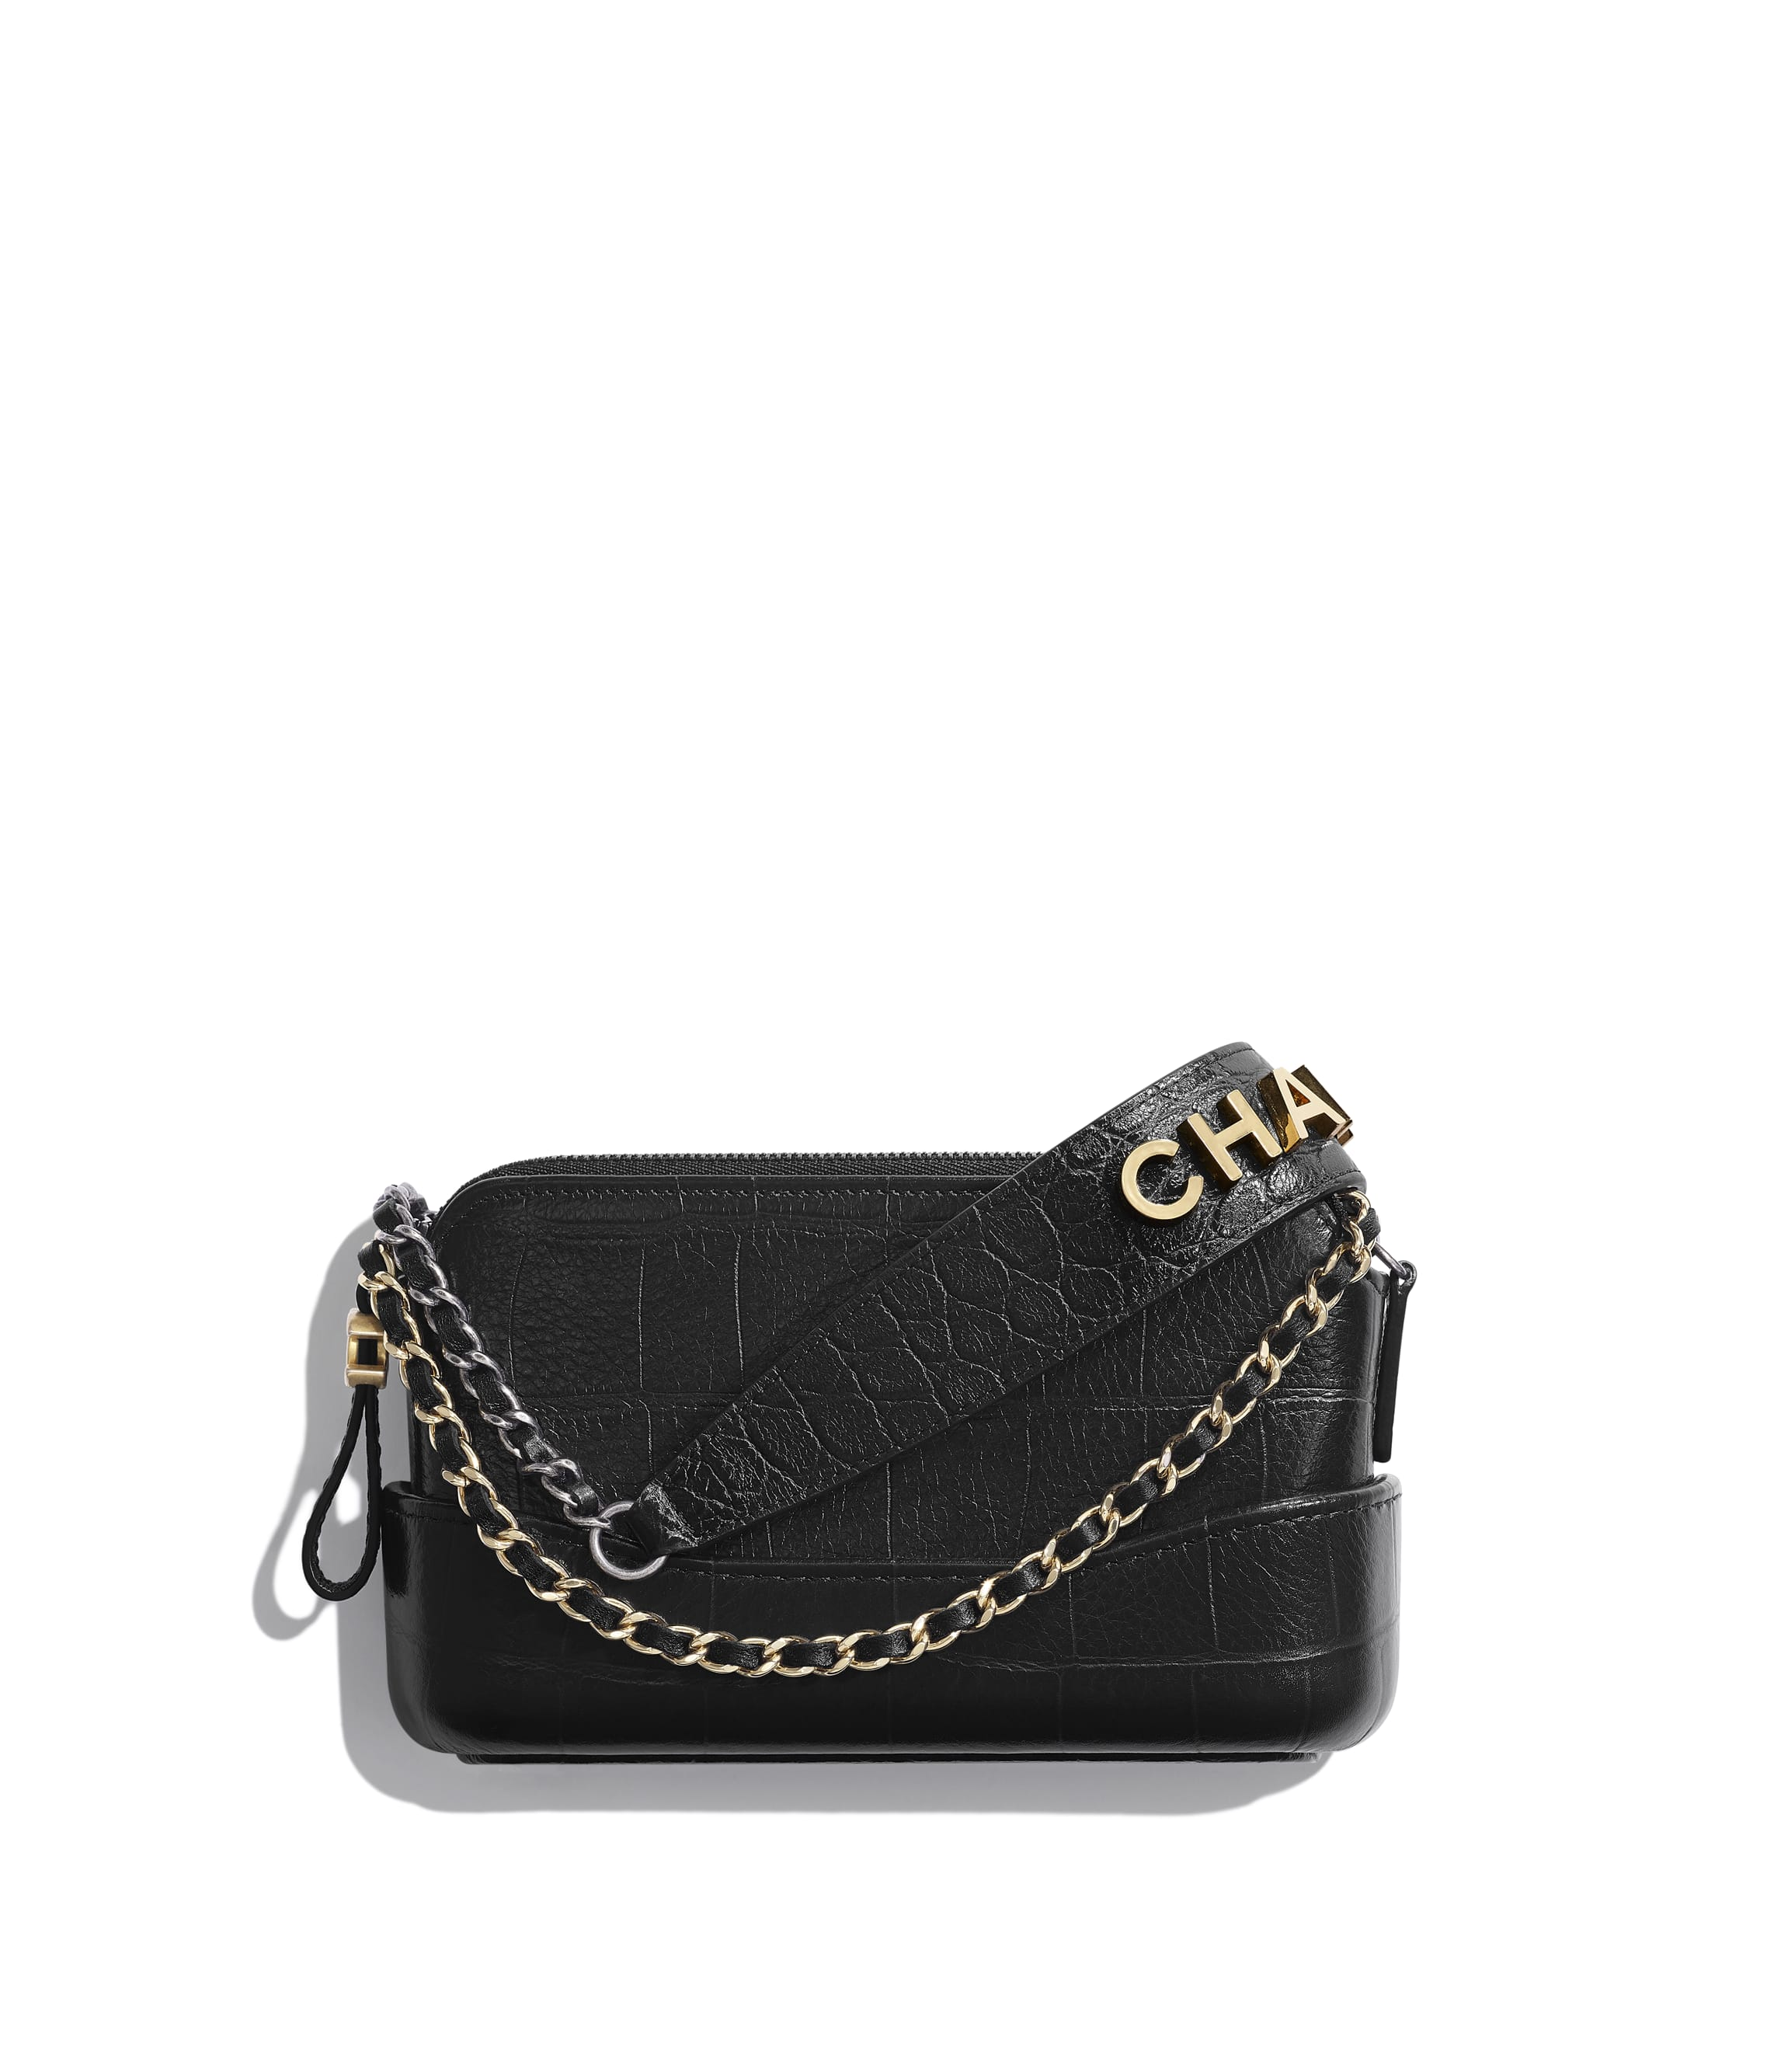 88950d481c997a Clutches with Chain - Small Leather Goods - CHANEL